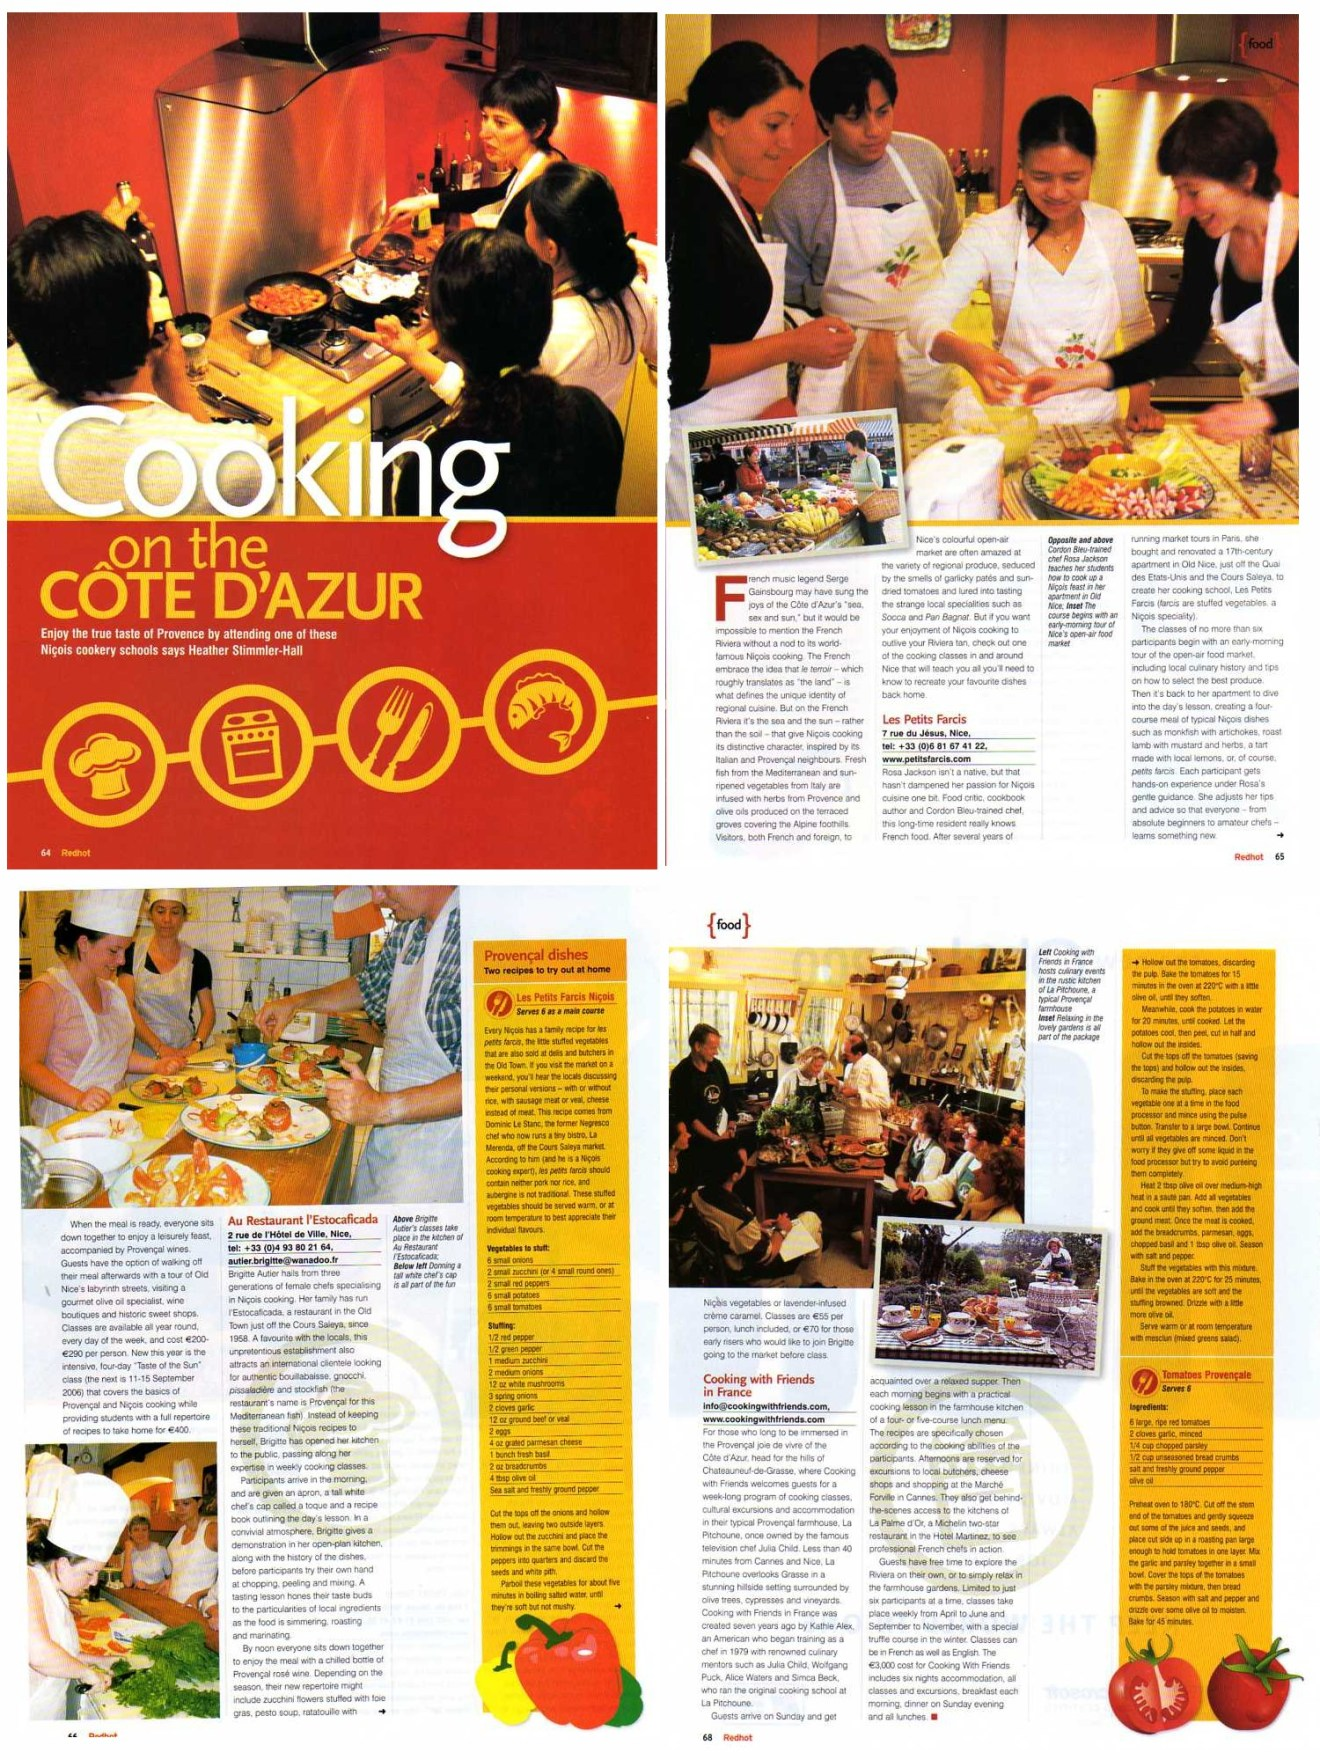 Cooking in Côte d'Azur article